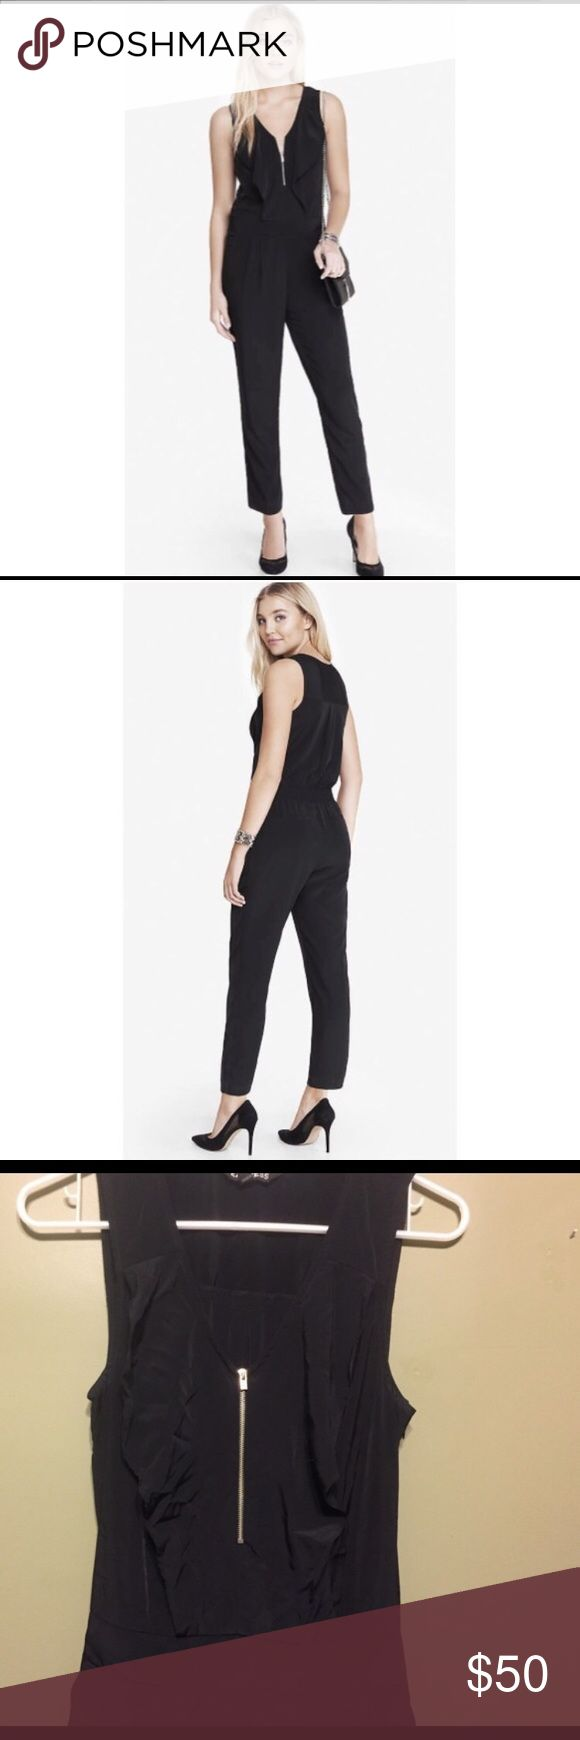 Black Expess zip front romper. NWOT. ❤️ Black Expess zip front romper. PERFECT condition! Never worn! A little wrinkle from being packed away, but nothing the dry cleaners can't fix! Express Other